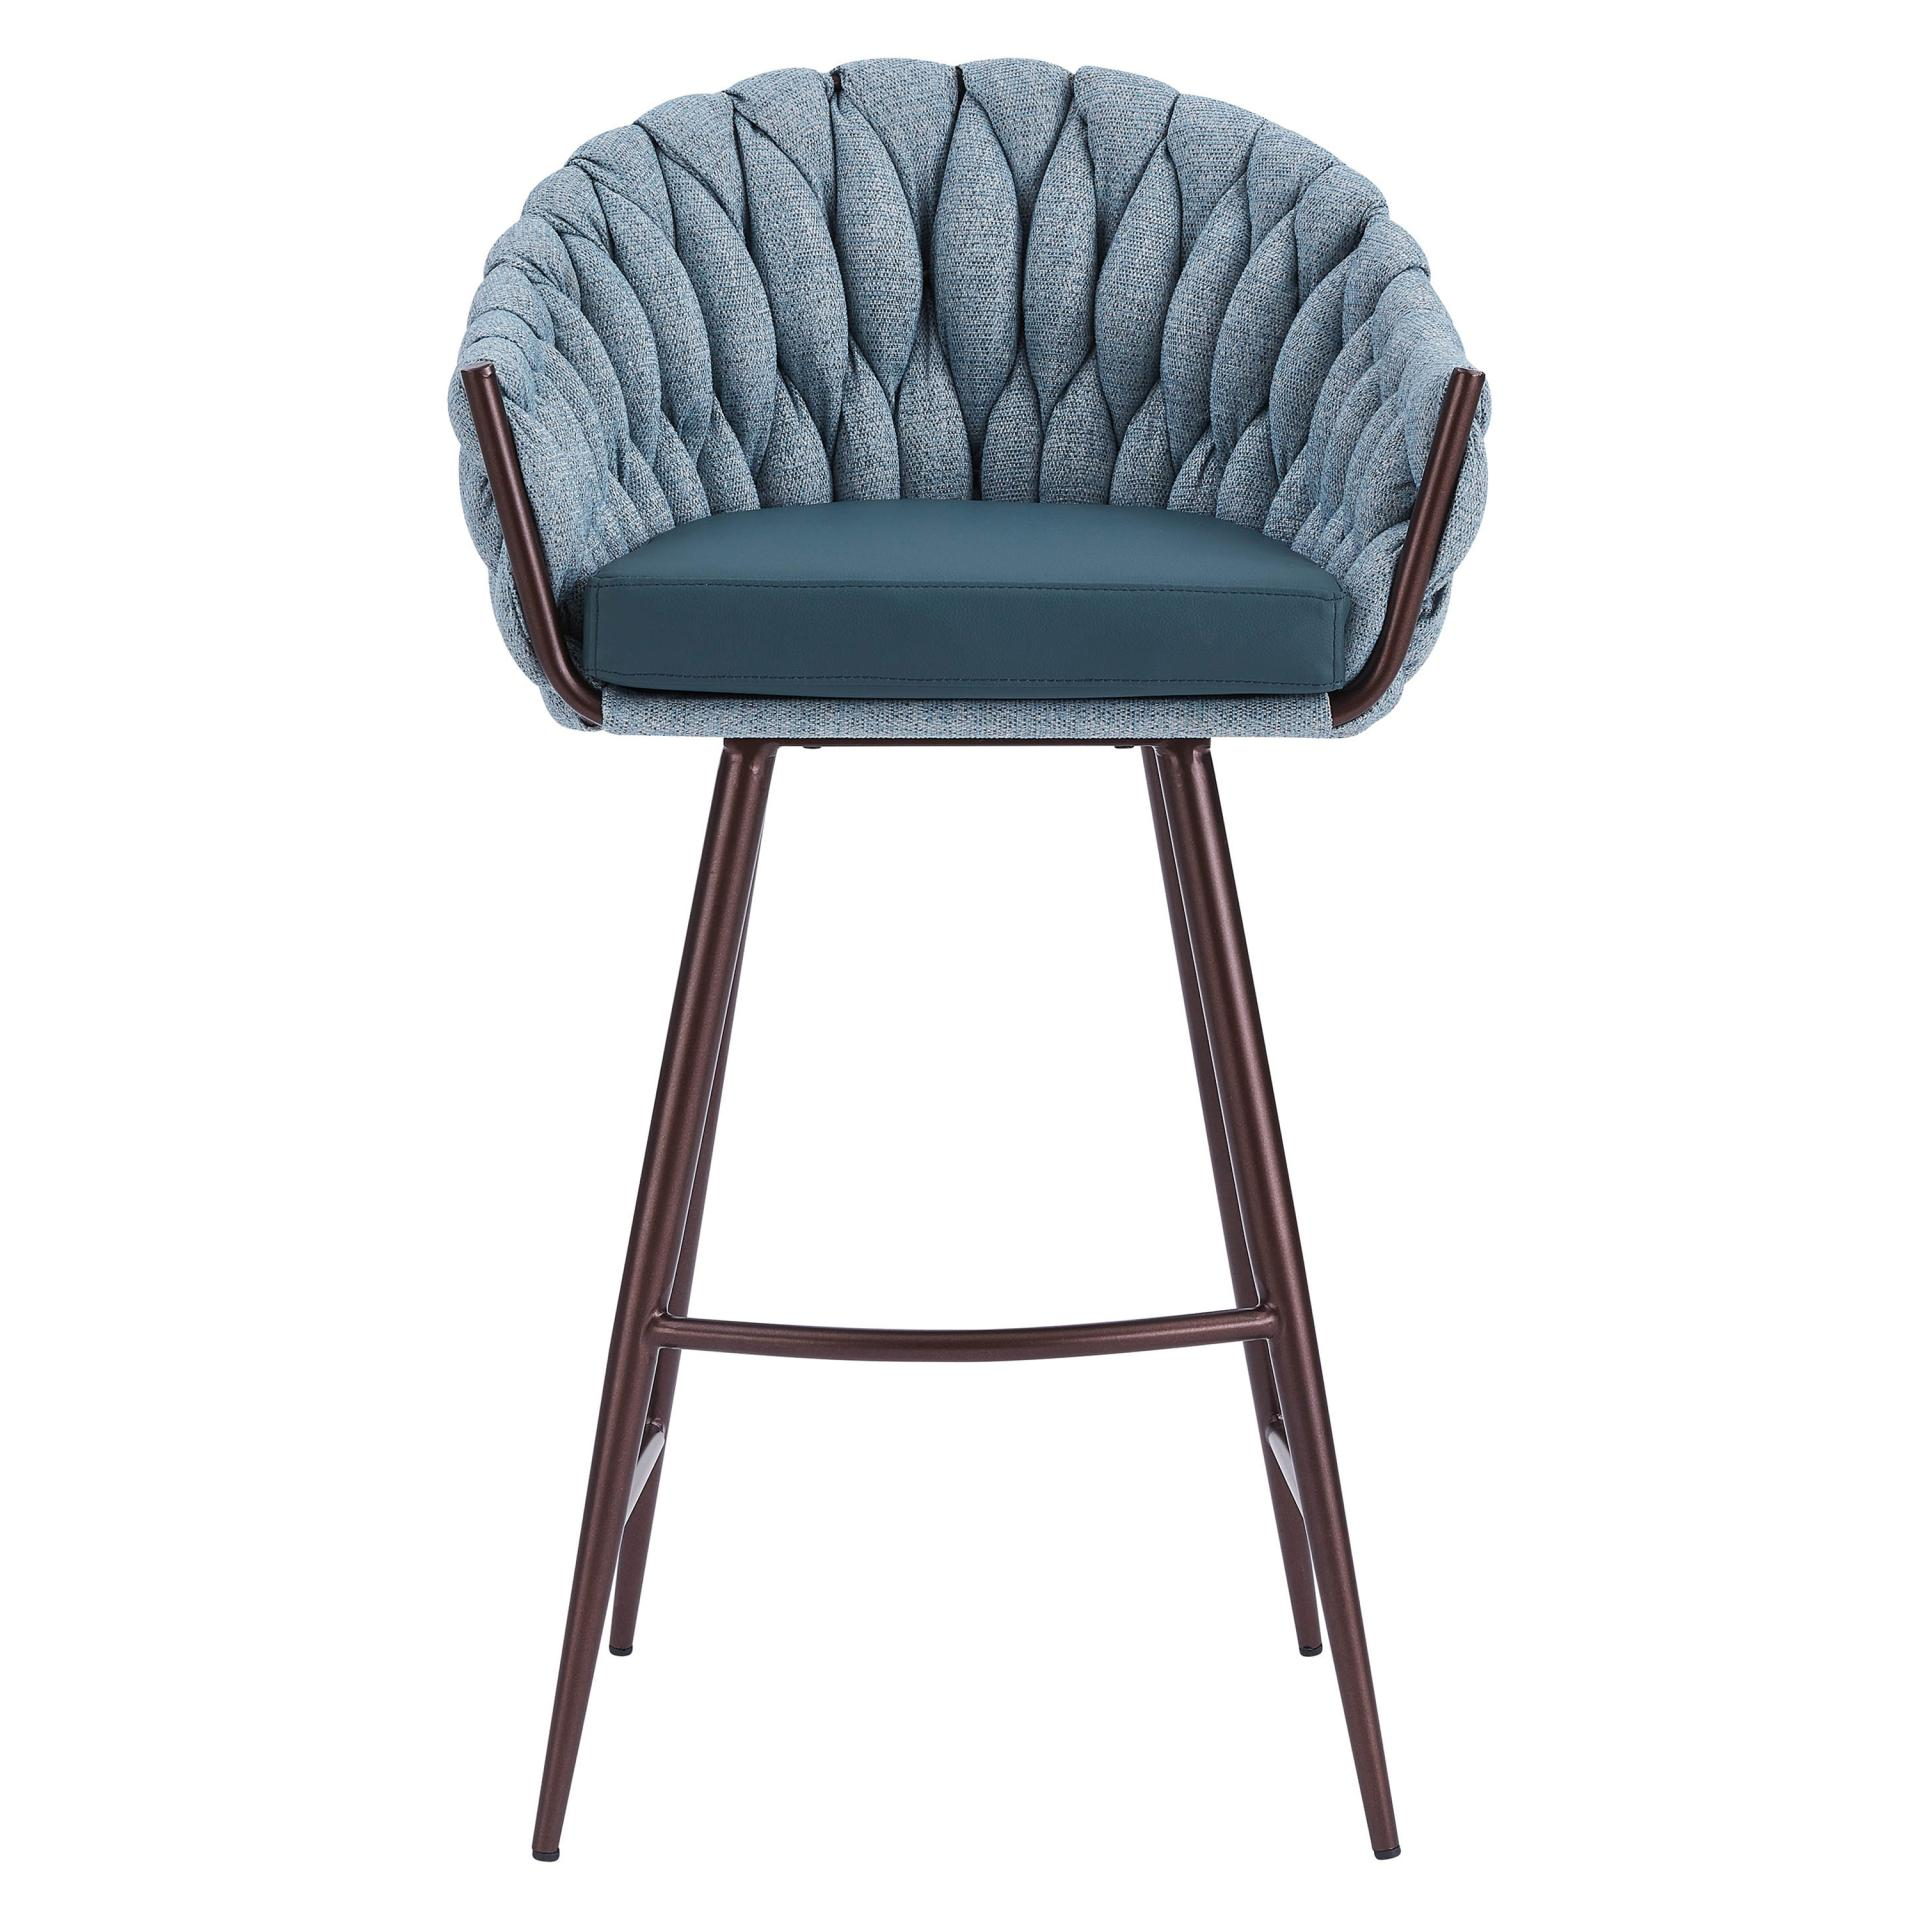 Excellent 1240003 3557 Npd Home Furniture Wholesale Lifestyle Alphanode Cool Chair Designs And Ideas Alphanodeonline